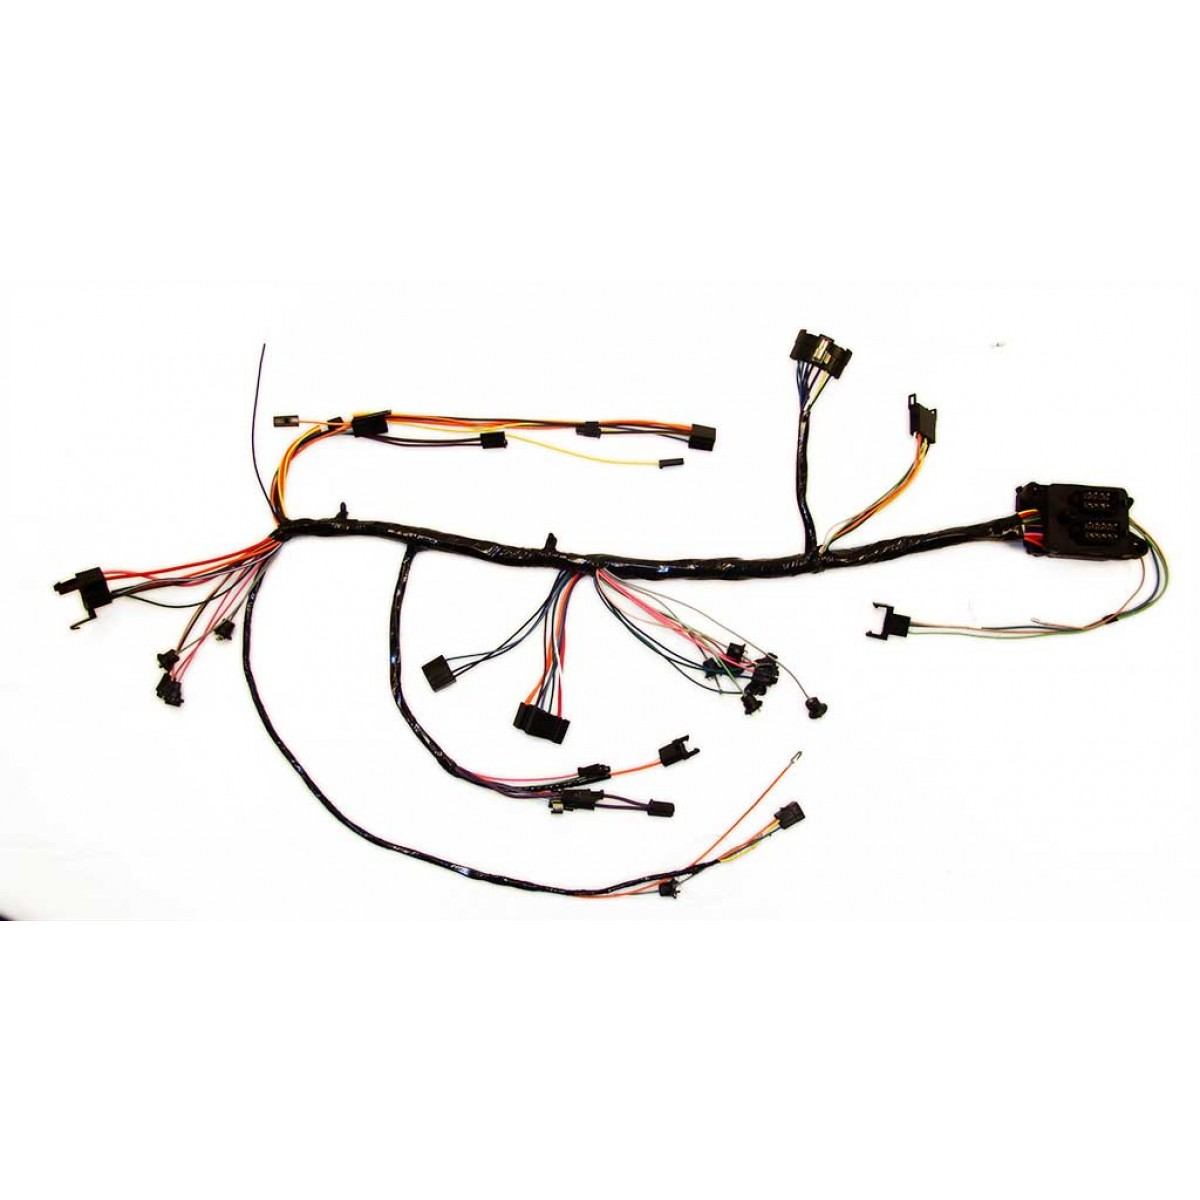 1967 chevrolet chevelle dash harness  with warning lights